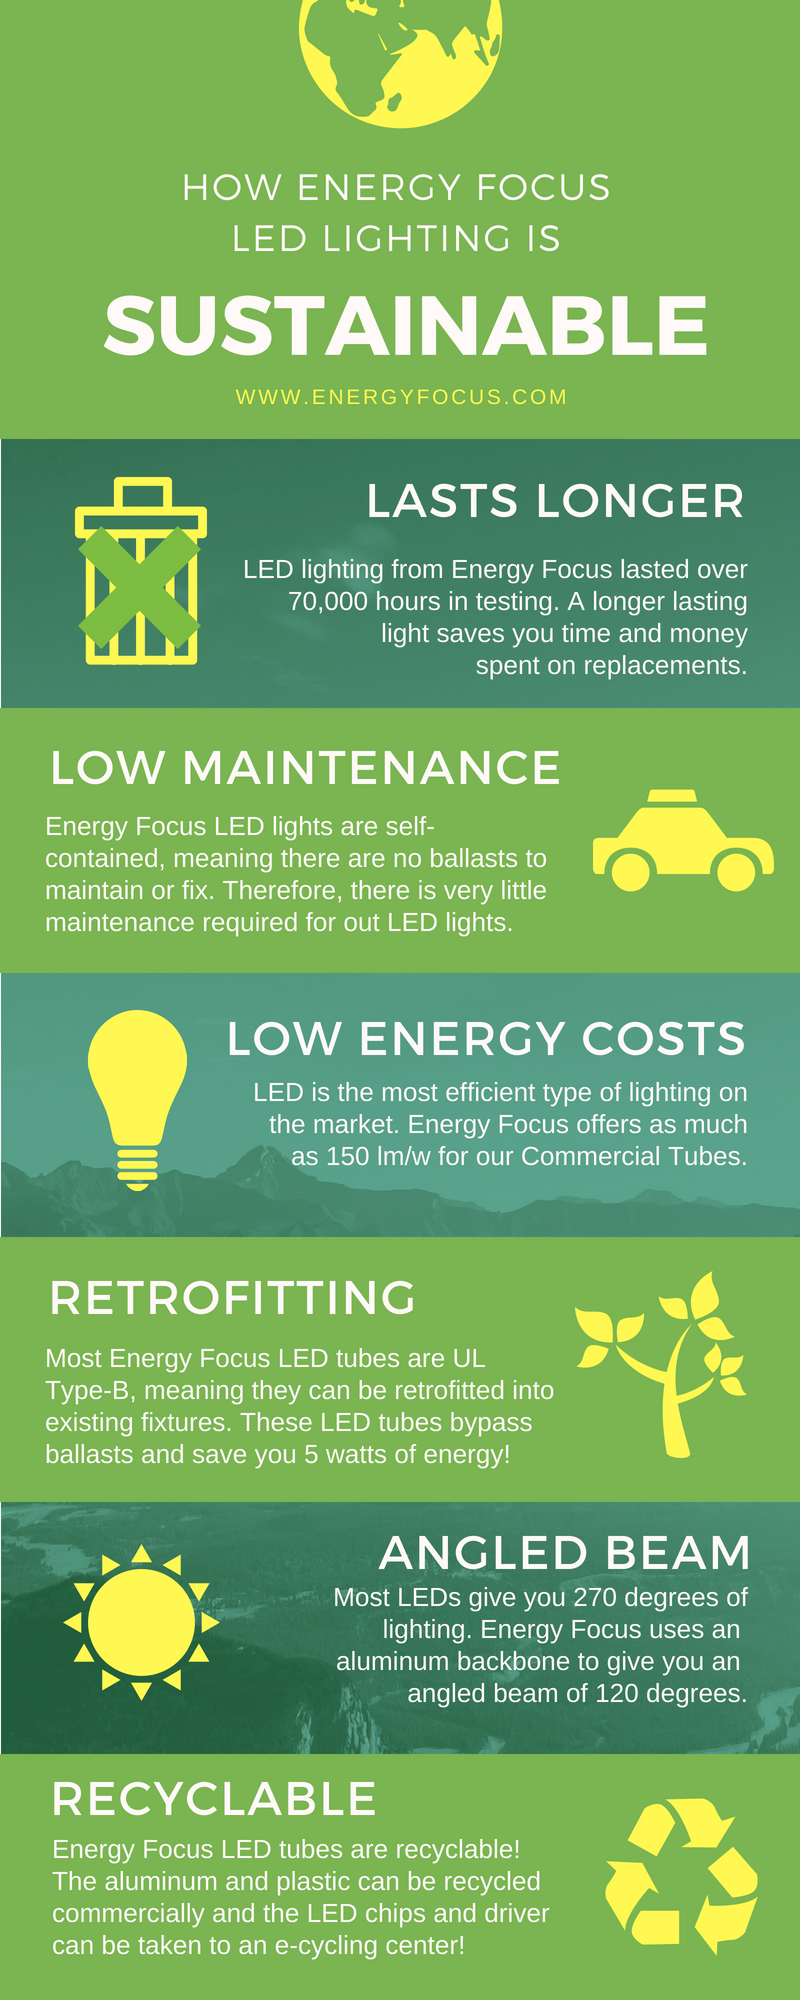 How Energy Focus LED Lighting is Sustainable Infographic